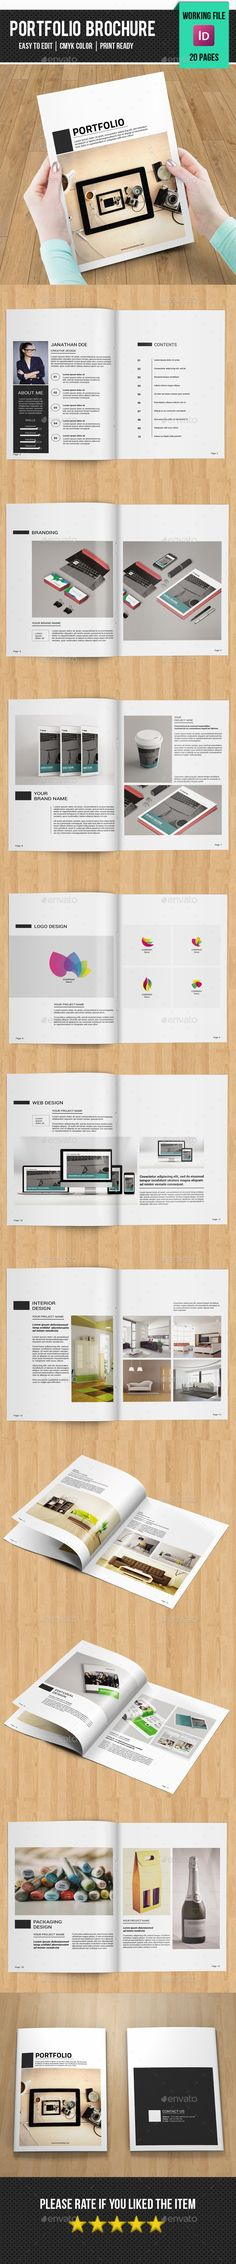 Minimal Interior & Architecture Portfolio Brochure Template InDesign ...